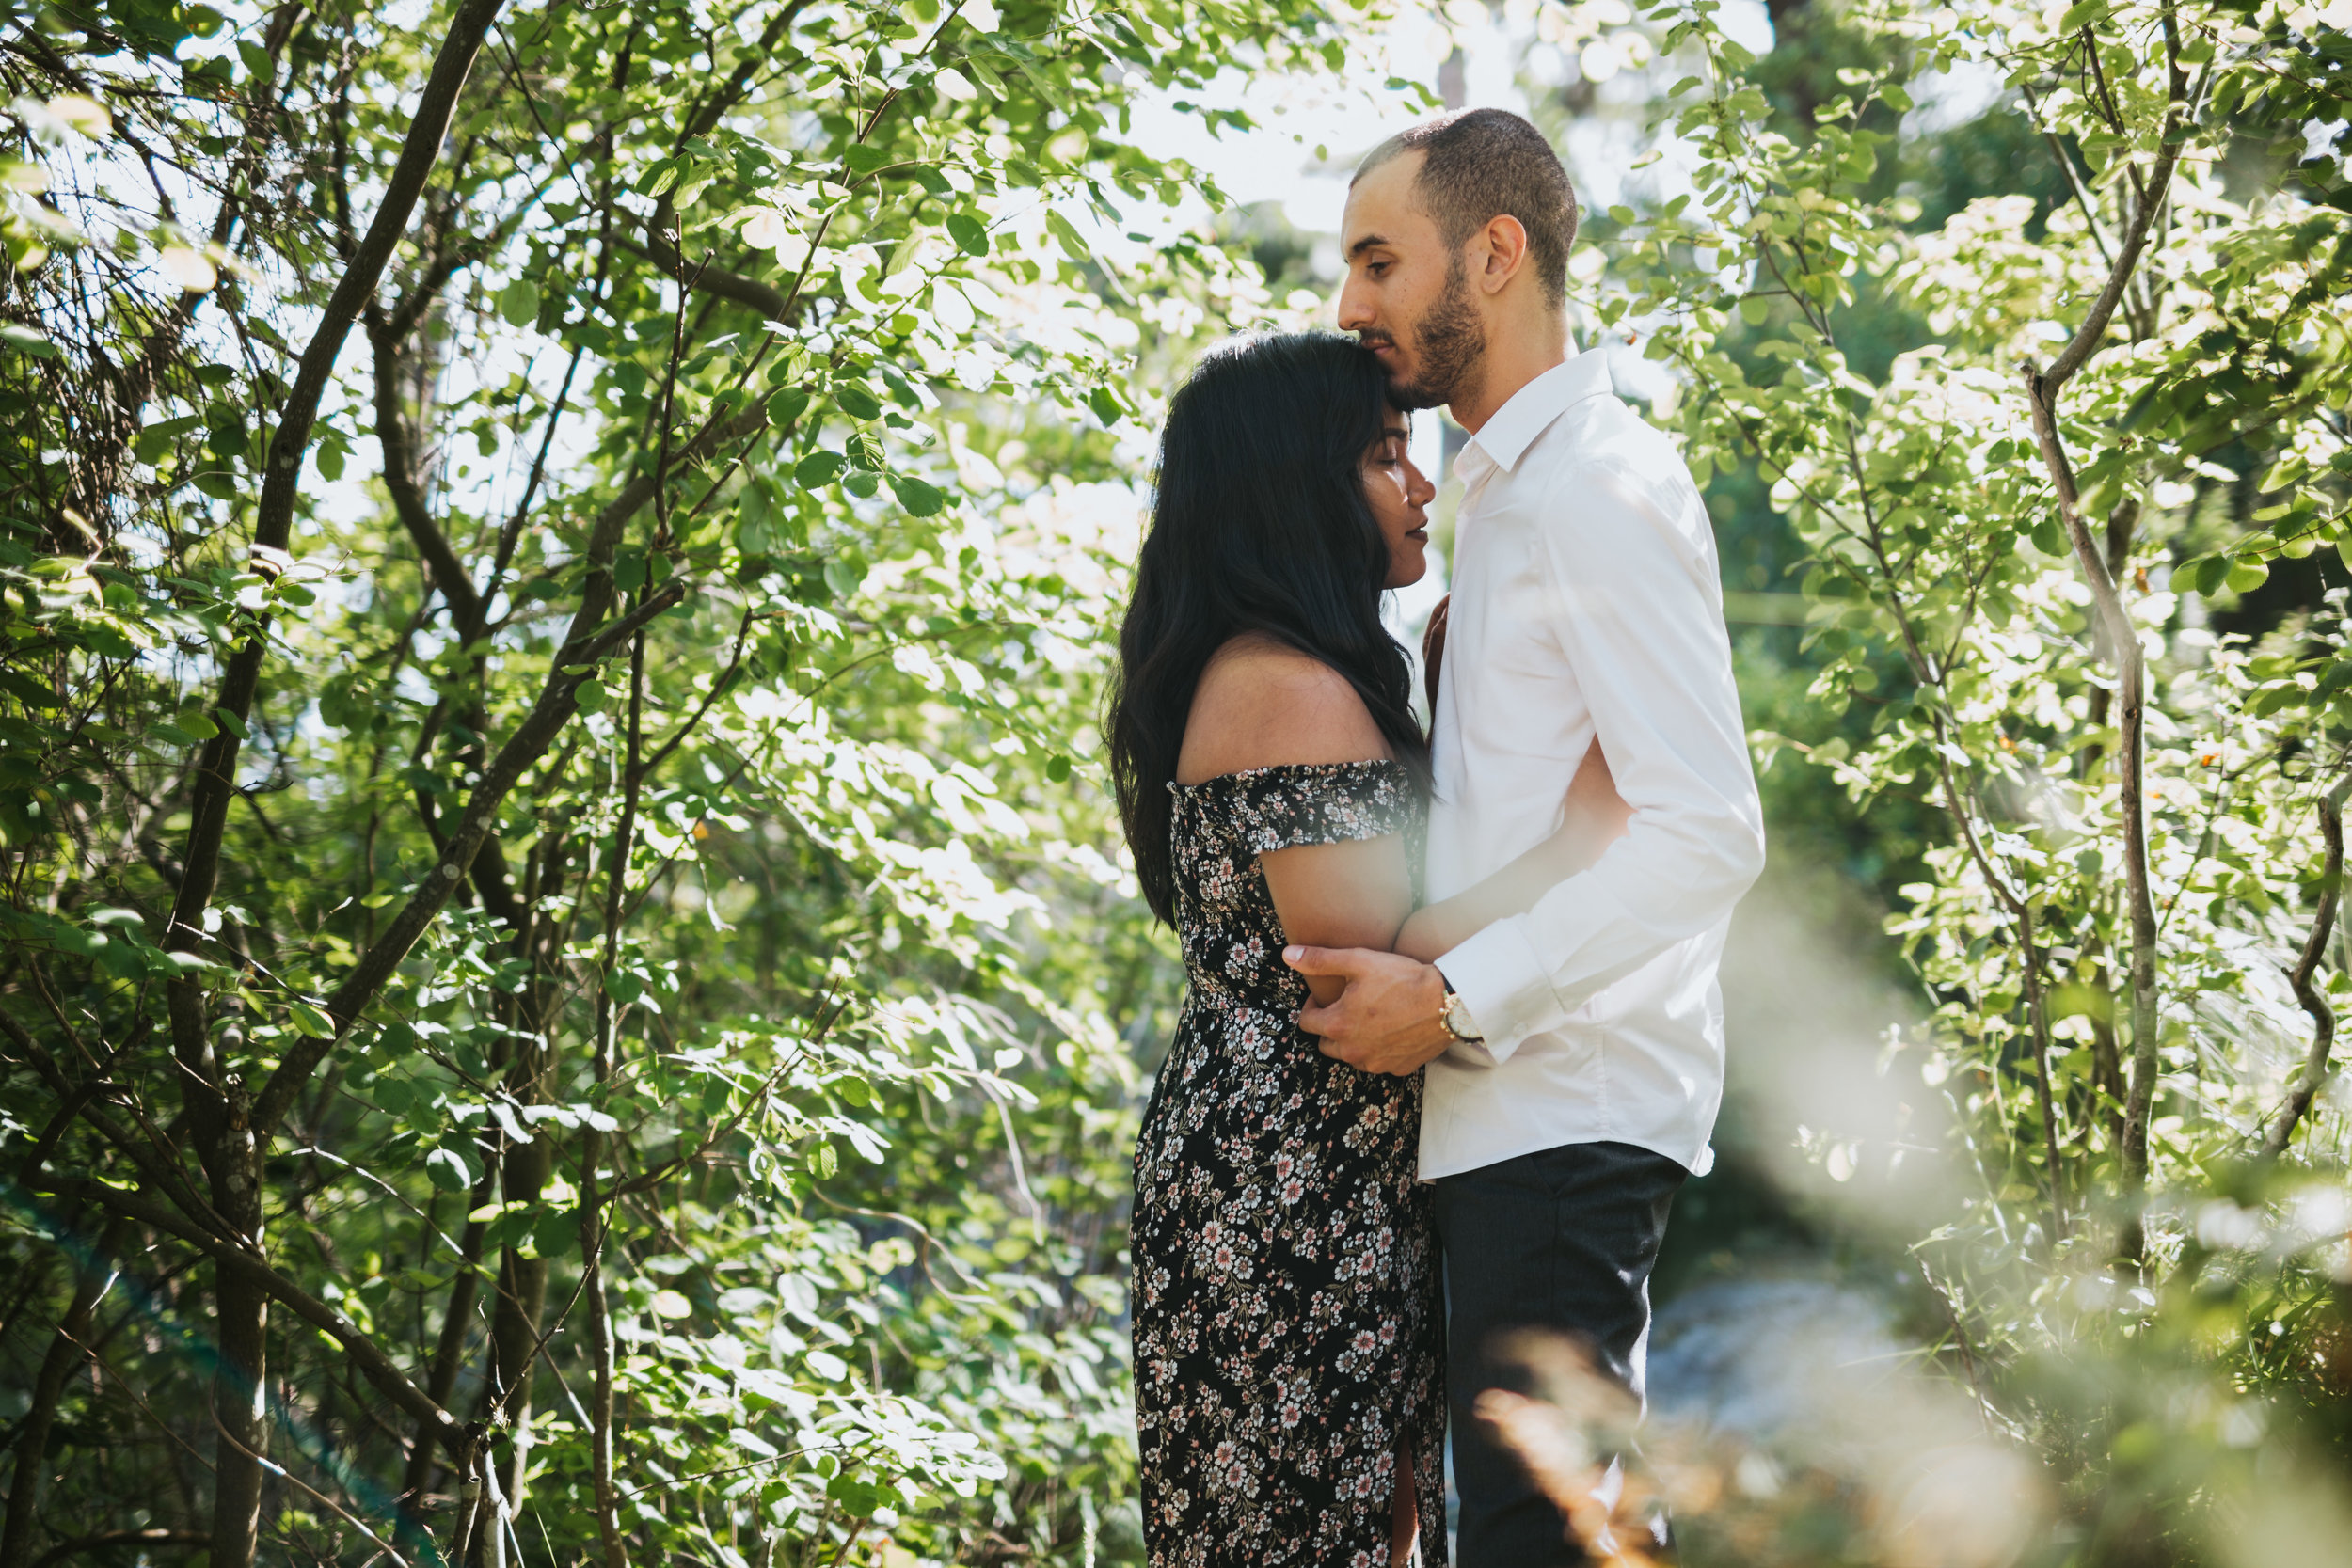 Boyfriend proposes to girlfriend at Whytecliff Park in West Vancouver